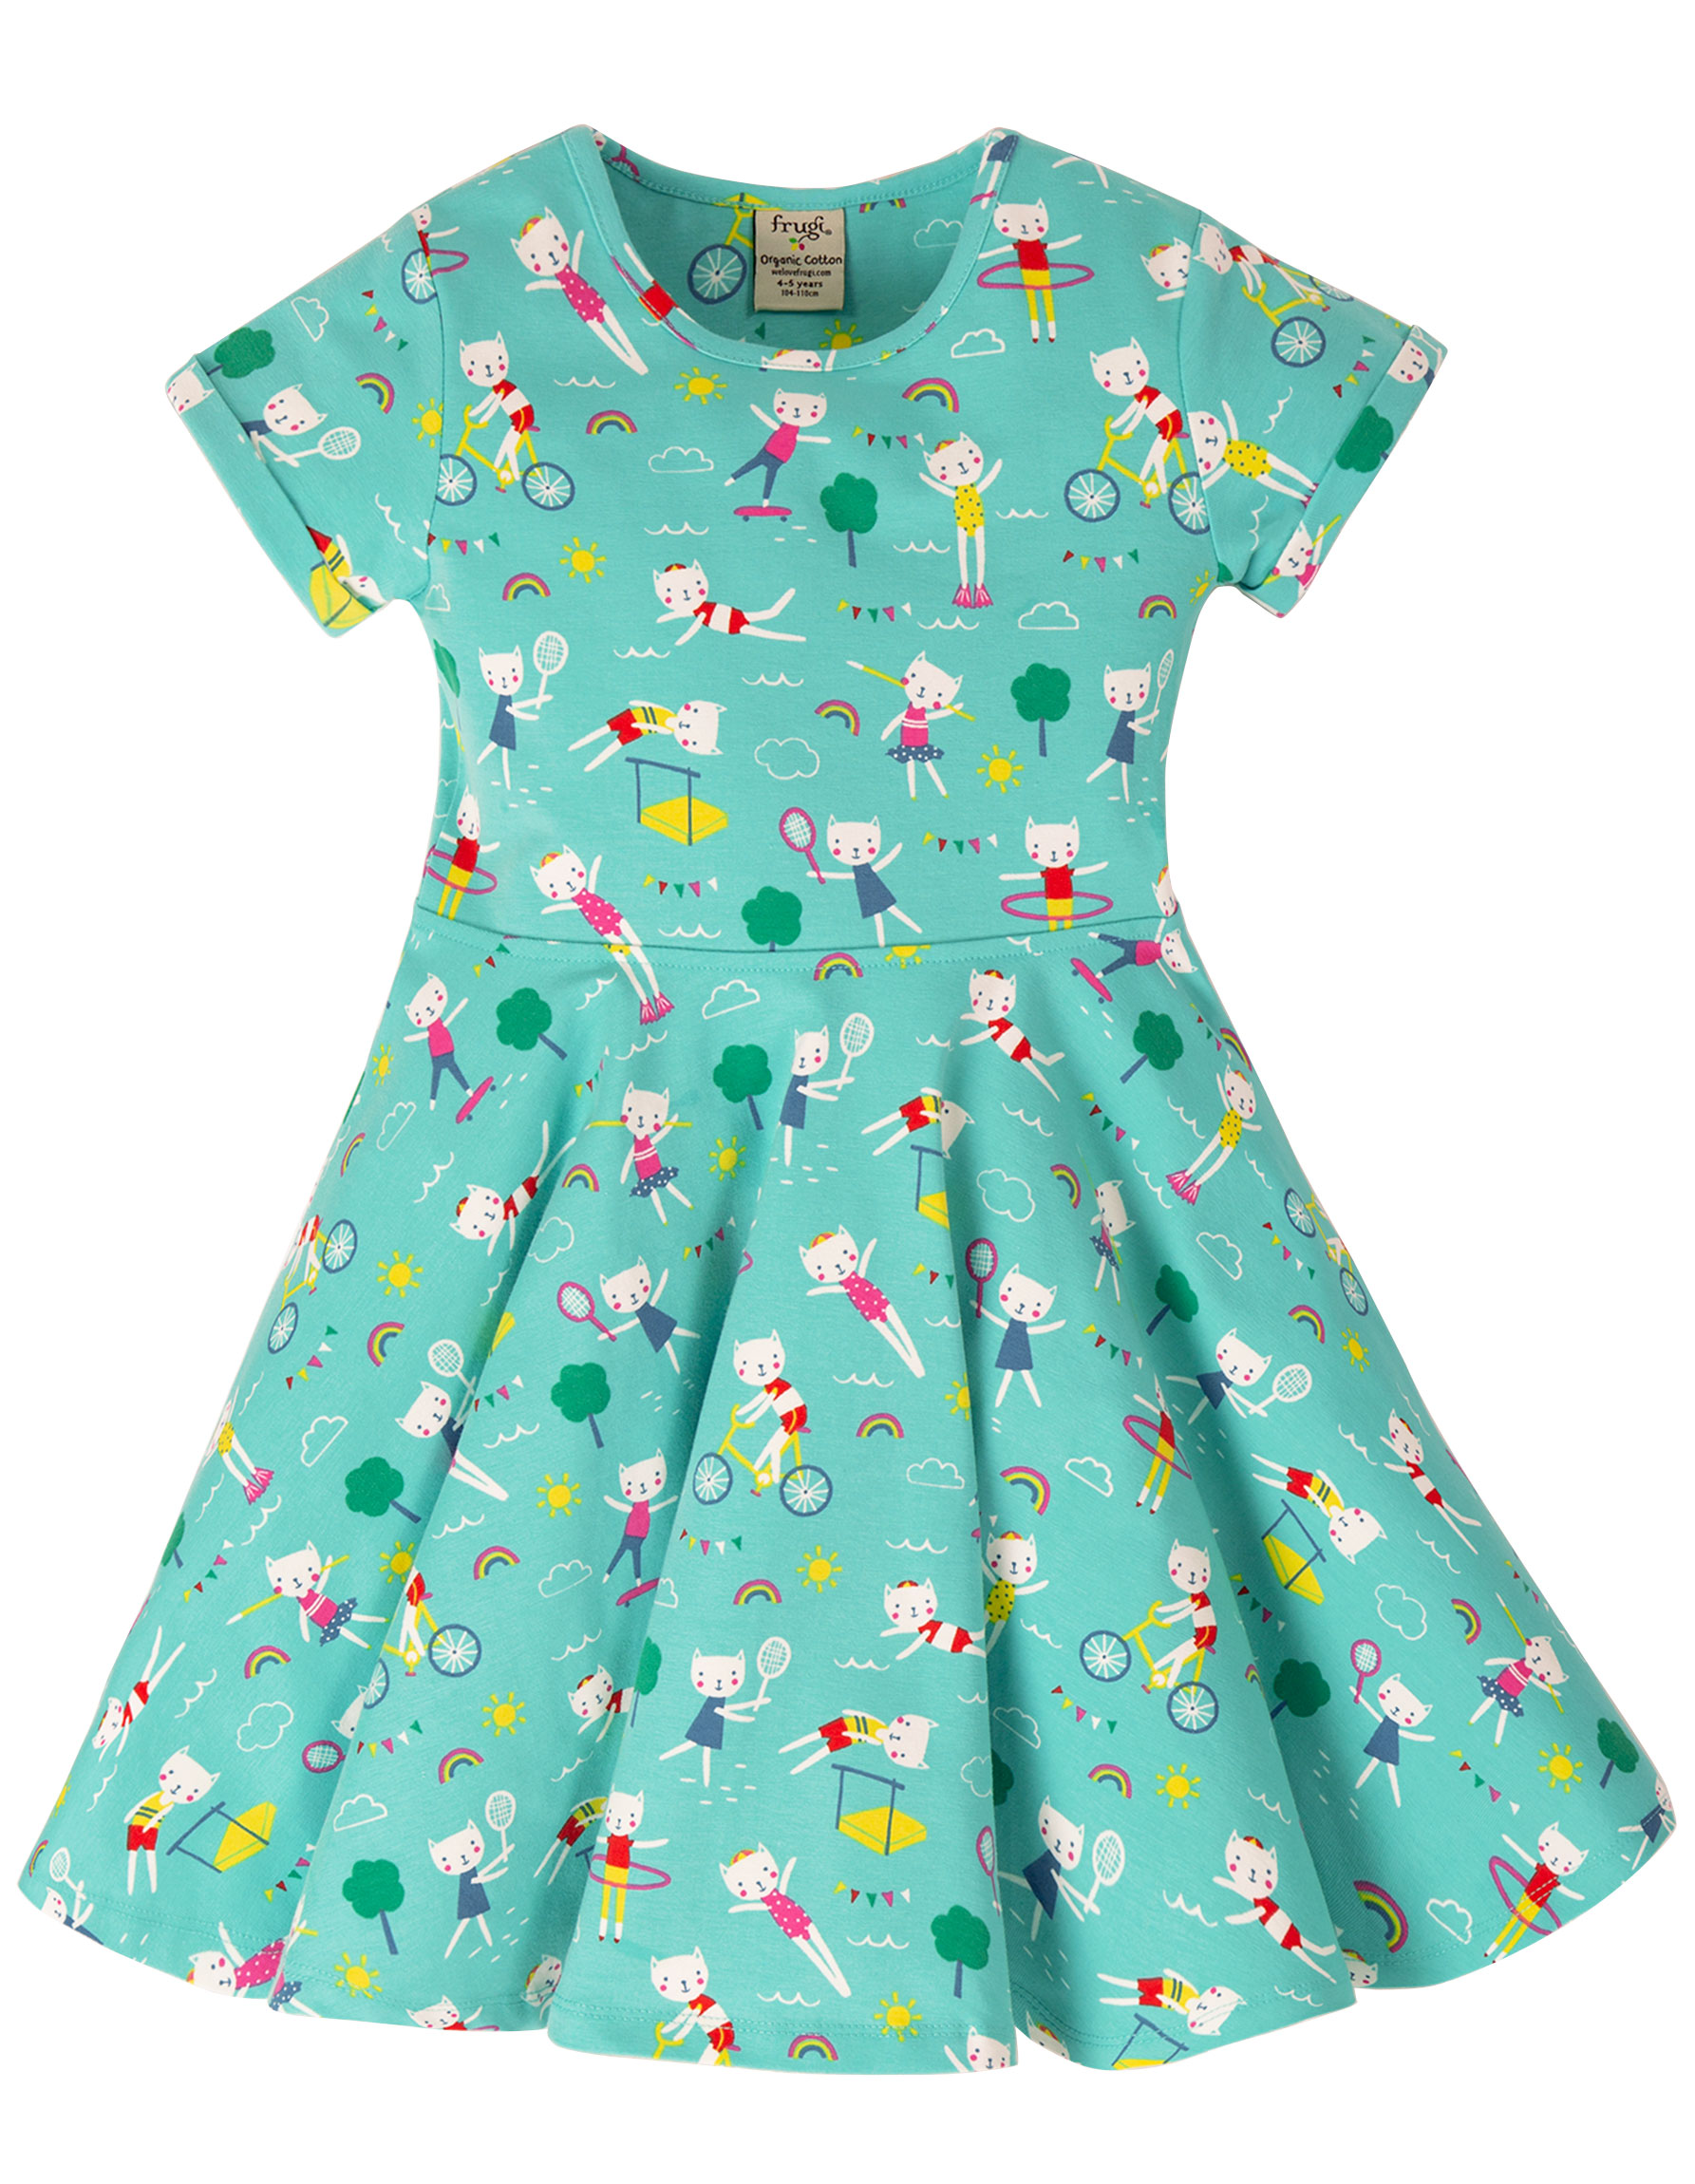 Frugi Spring Skater Dress, Fun at the Games